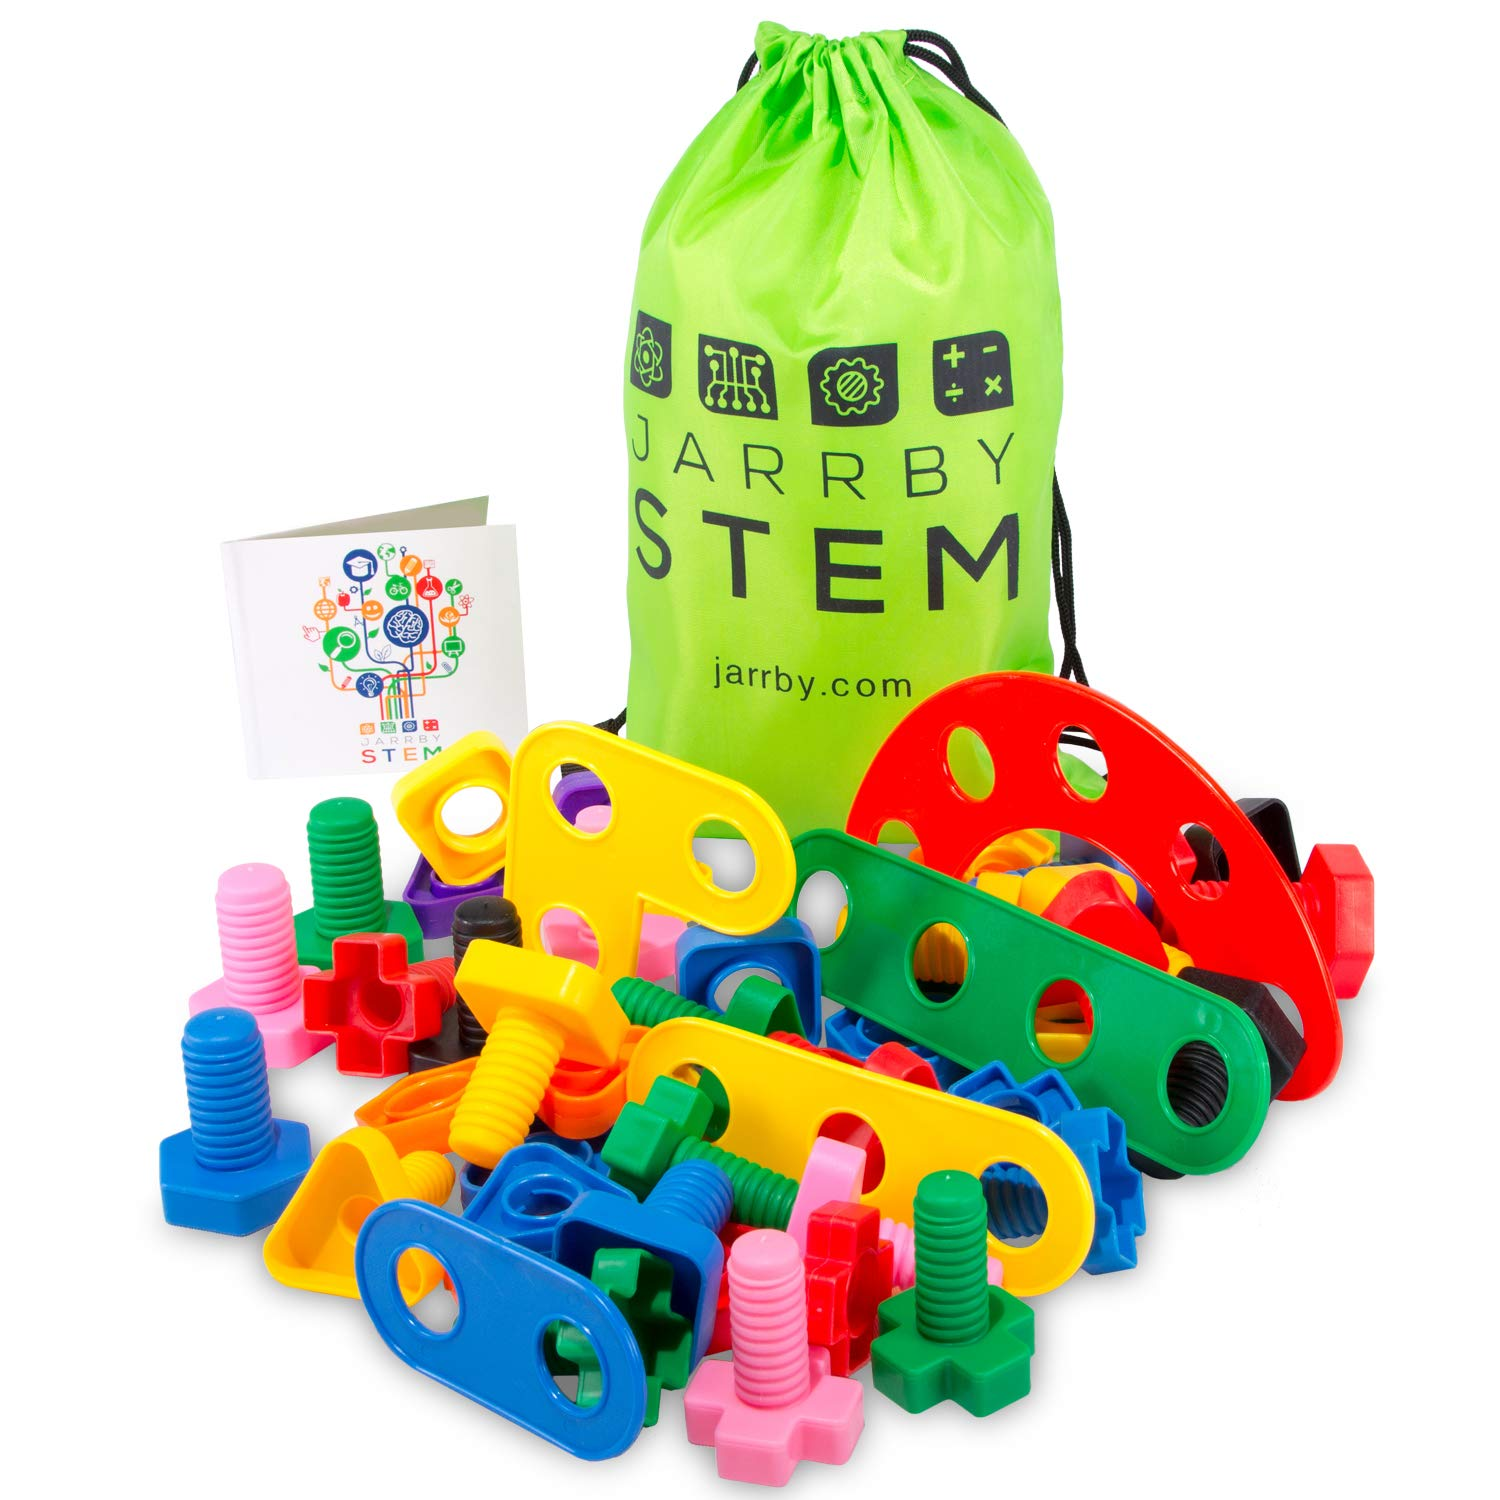 Nuts and Bolts Fine Motor Skills OCT Toddler Toys - Montessori Building Construction Kids Matching Game for Preschoolers - Jumbo 24 pc Set with Backpack. Juguetes para niños DE 1 2 3 4 años